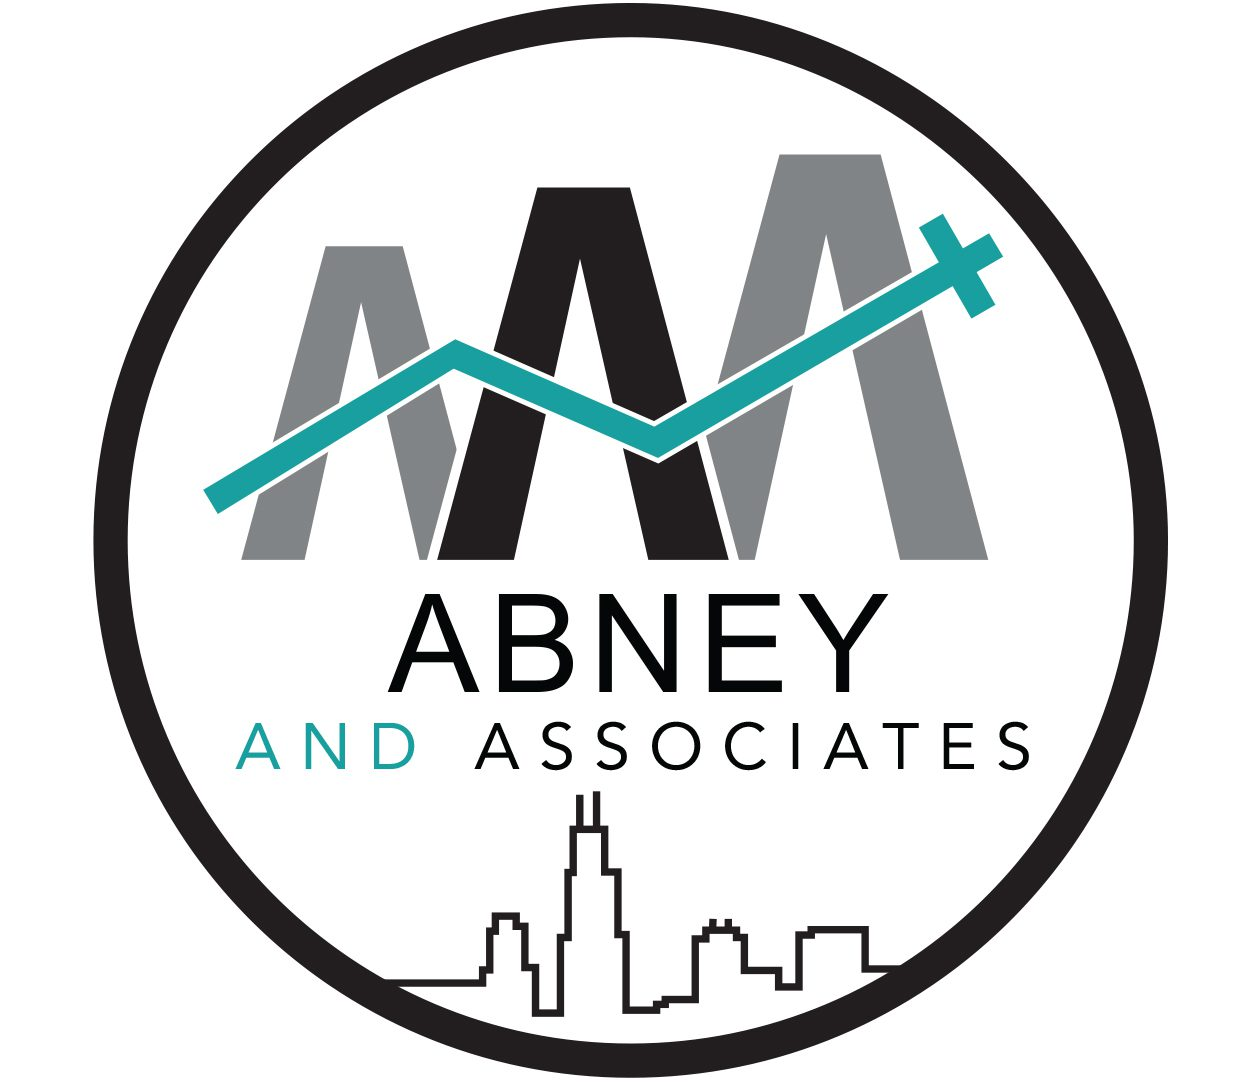 Abney and Associates